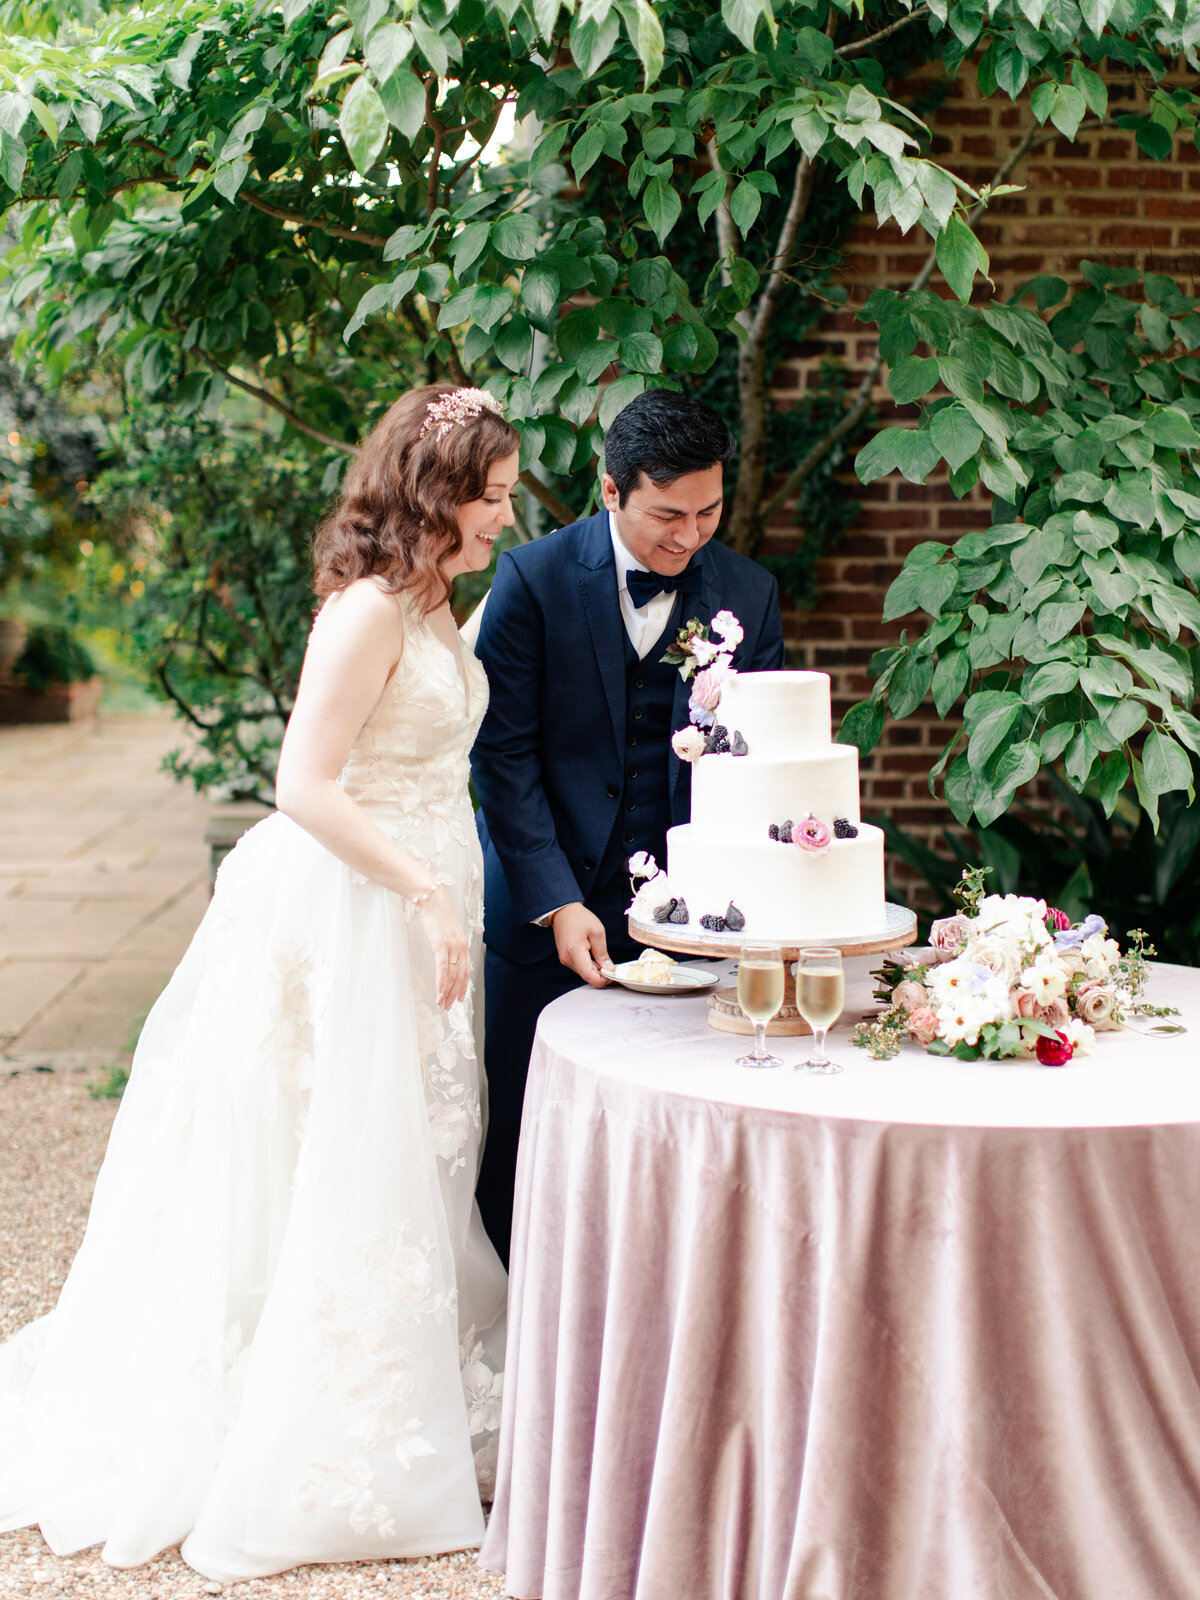 25_AOP_Krista+Pedro_FoundersGardenWedding-126